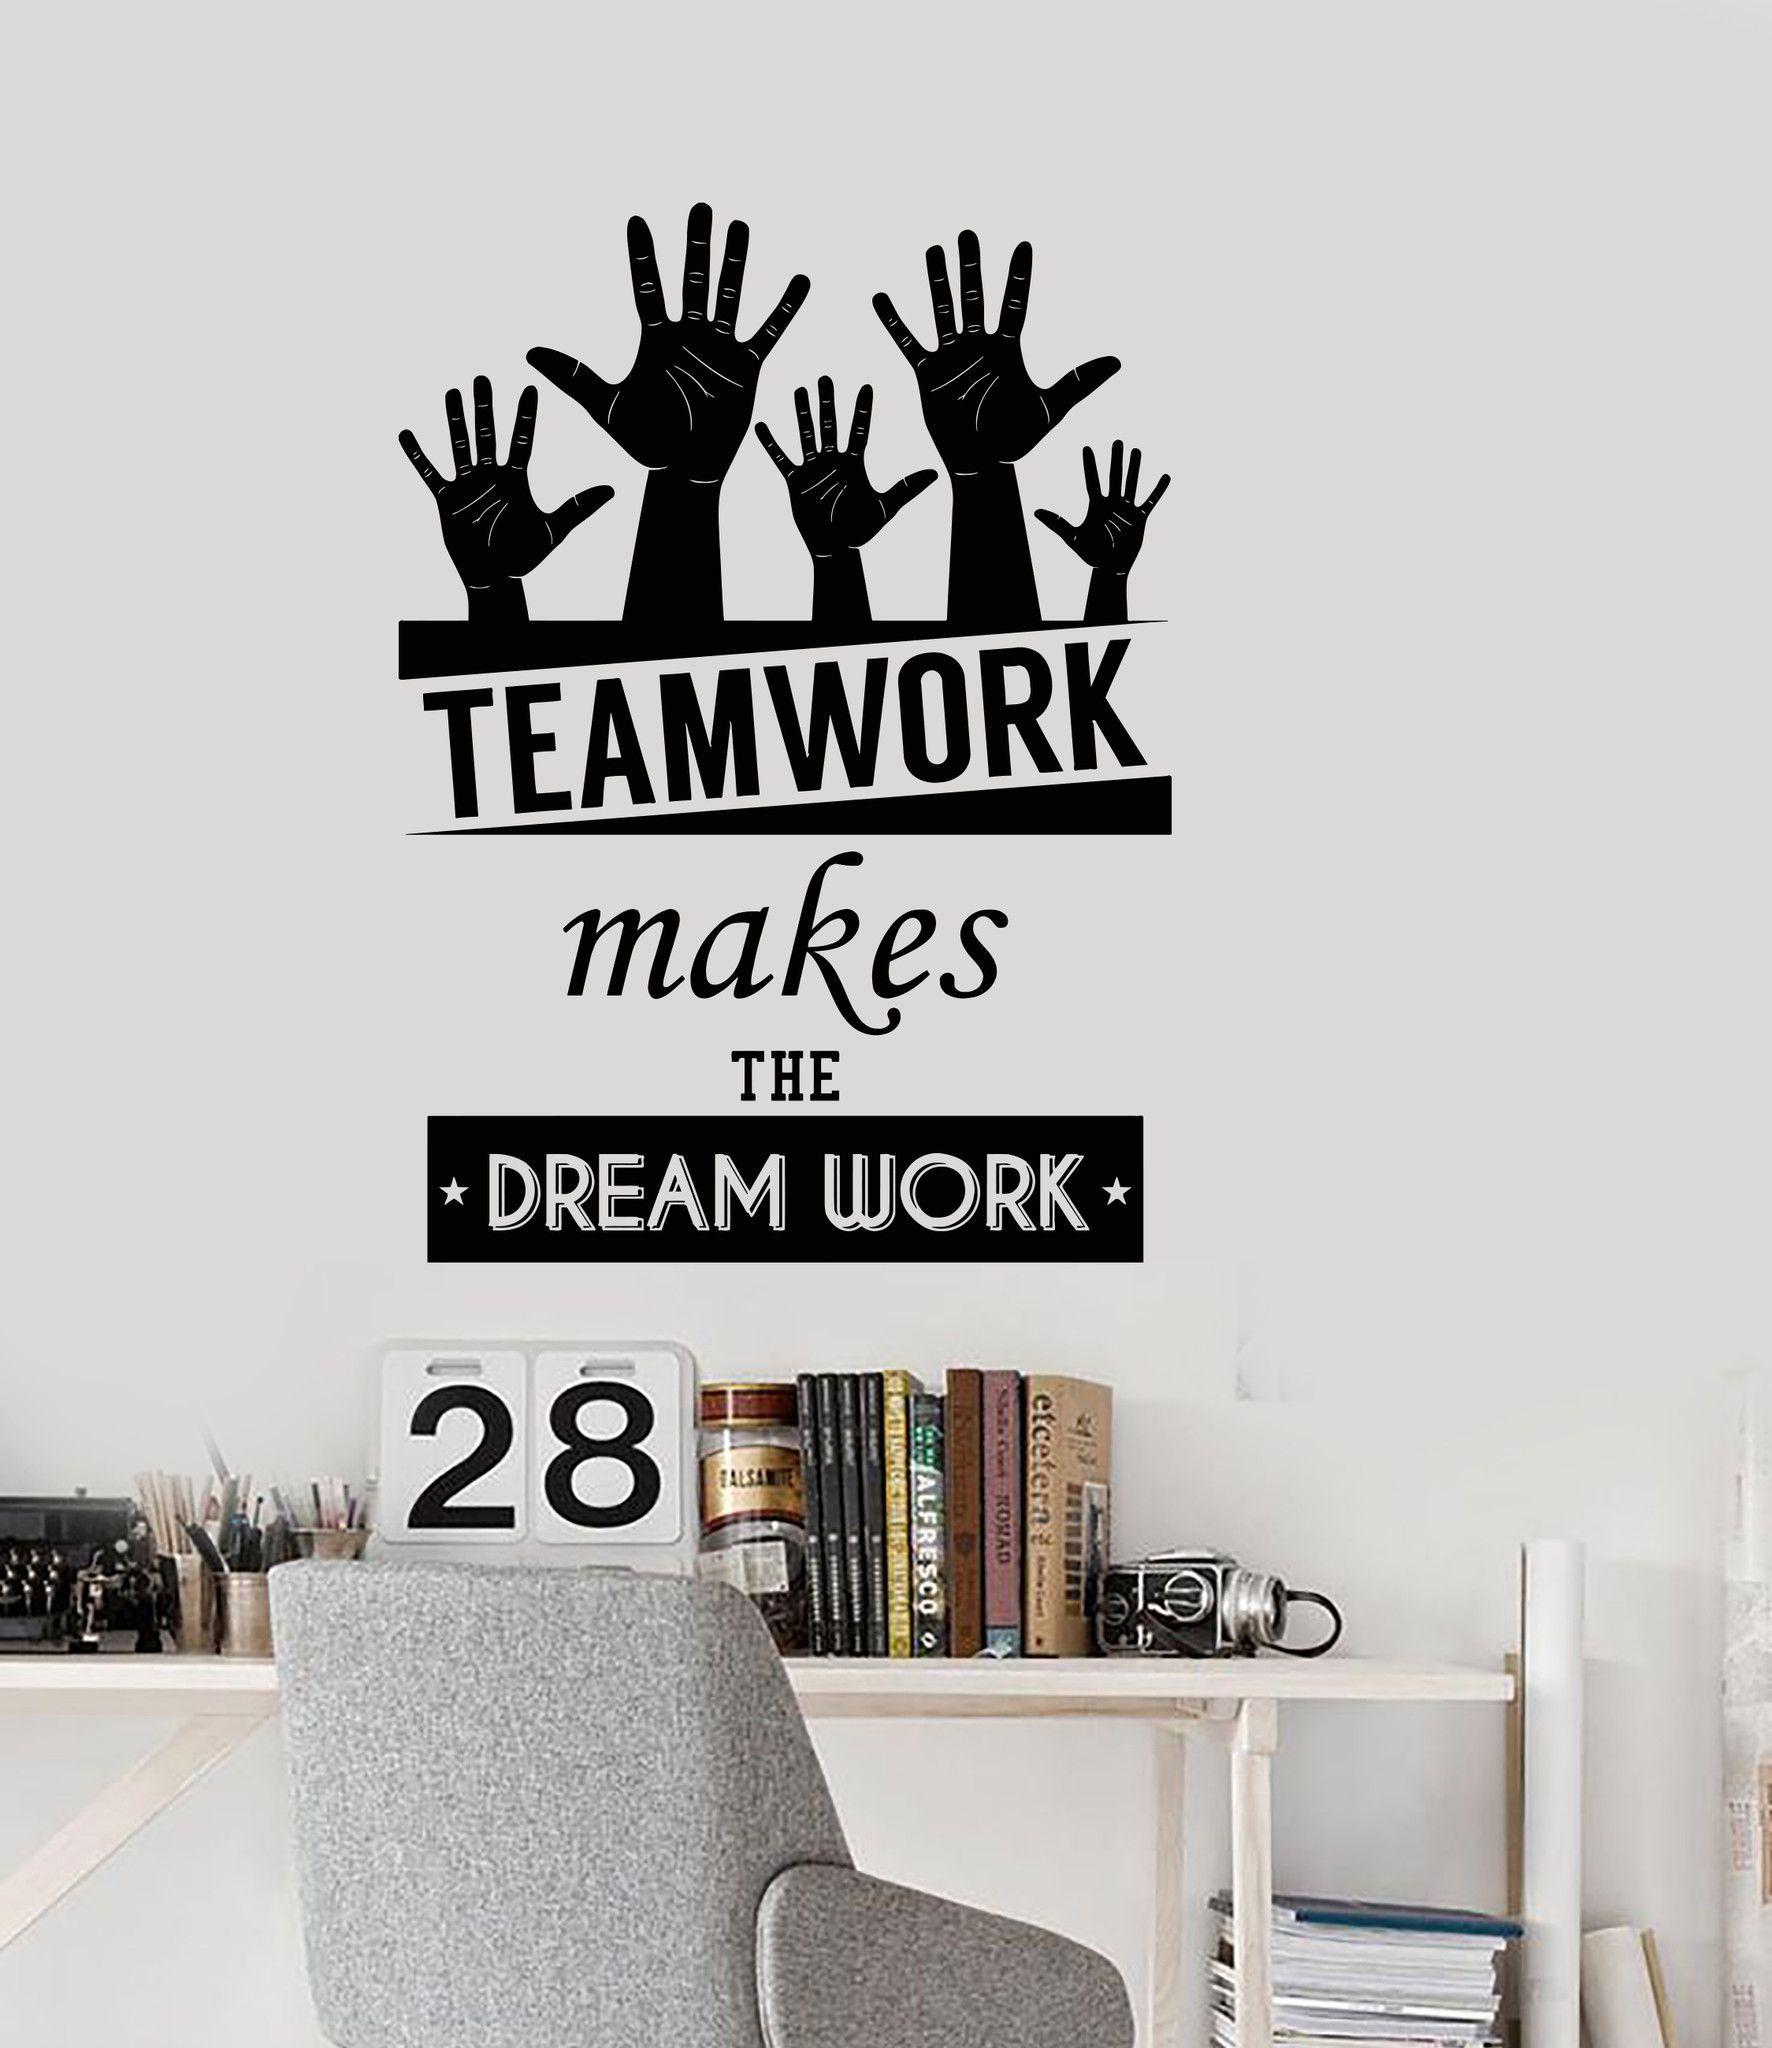 Cool Vinyl Decal Wall Sticker Office Quote Teamwork Makes The - Where to get vinyl stickers made